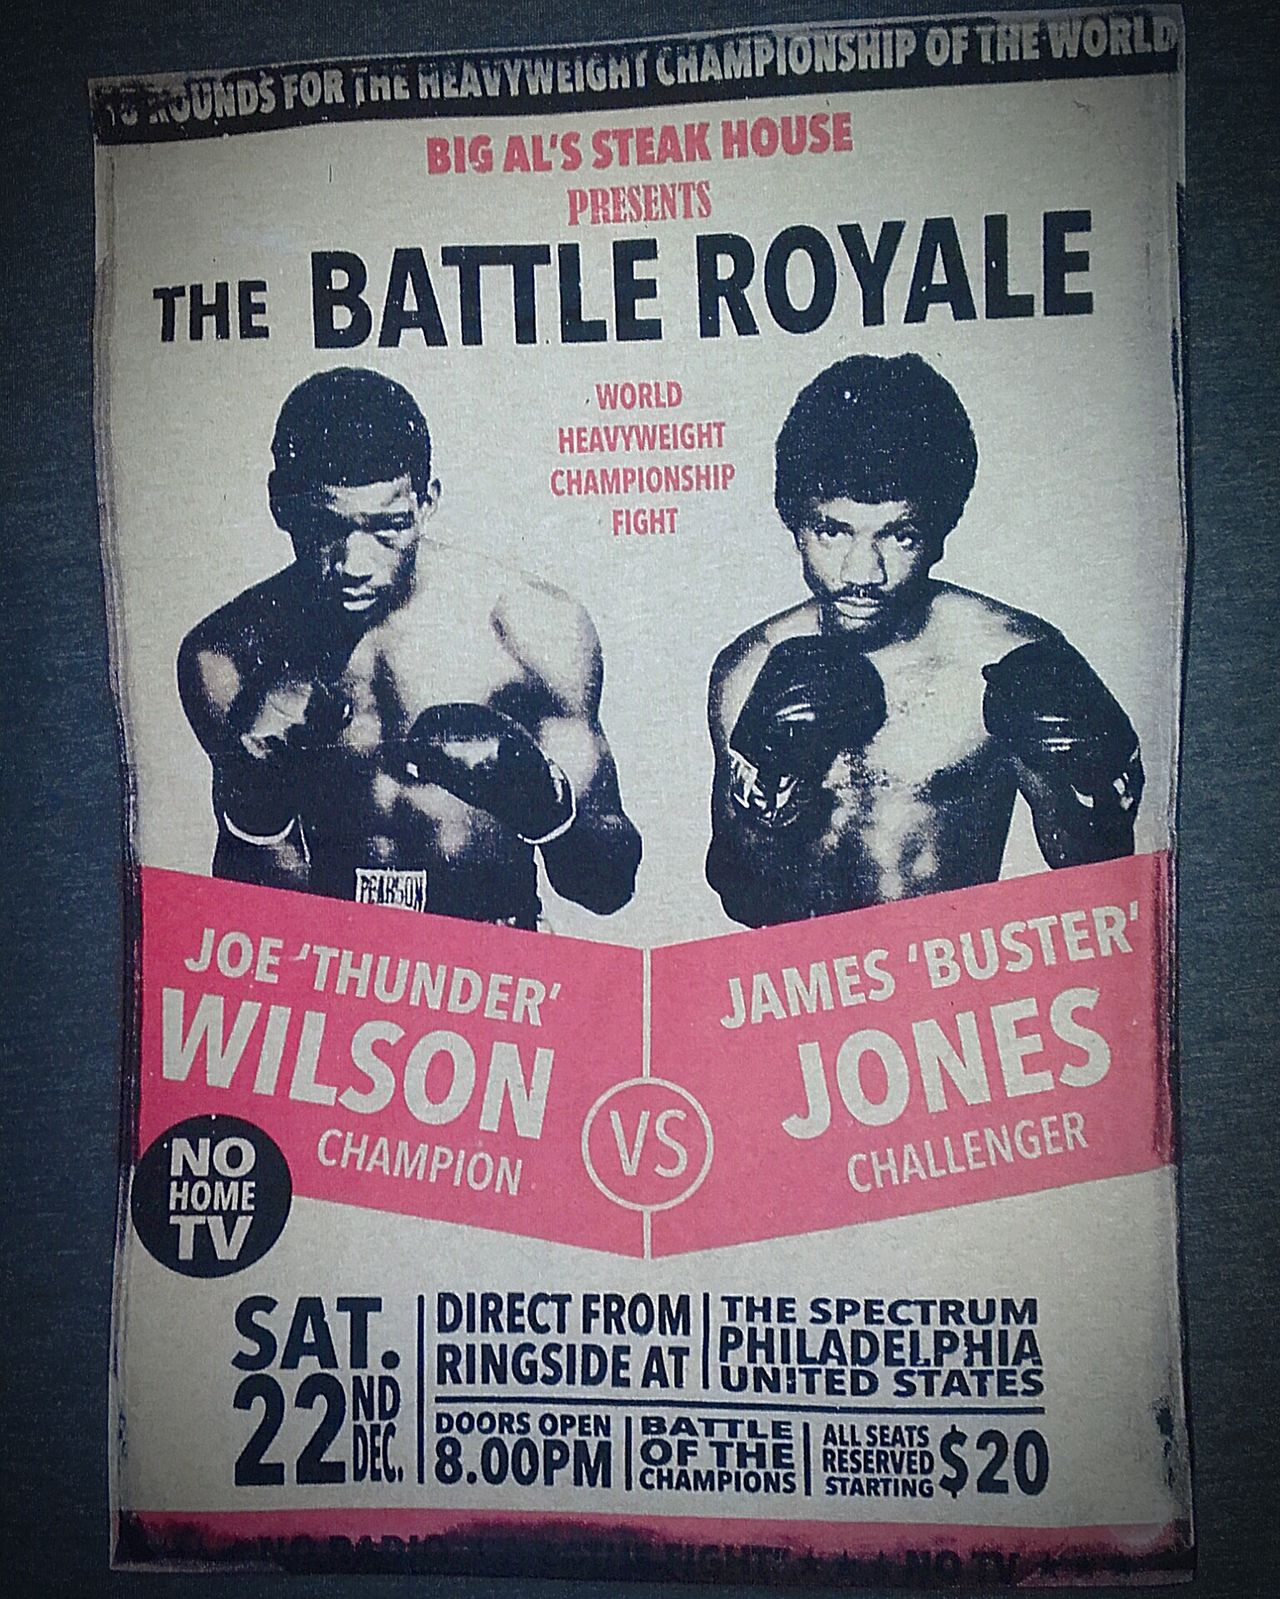 Poster Posters Boxing Posterporn Joe 'thunder' Wilson James 'buster' Jones Champion Vs Challenger Champ V Challenger Champ Vs Challenger The Battle Royale Philadelphia World Heavyweight Championship Big Al's Steakhouse Big Al's Steak House The Battle Of The Champions Color Posters Wilson Vs Jones Oldposter Poster Collection Oldposters Postercollection Poster Wall Wall Posters Old Poster Boxing Posters